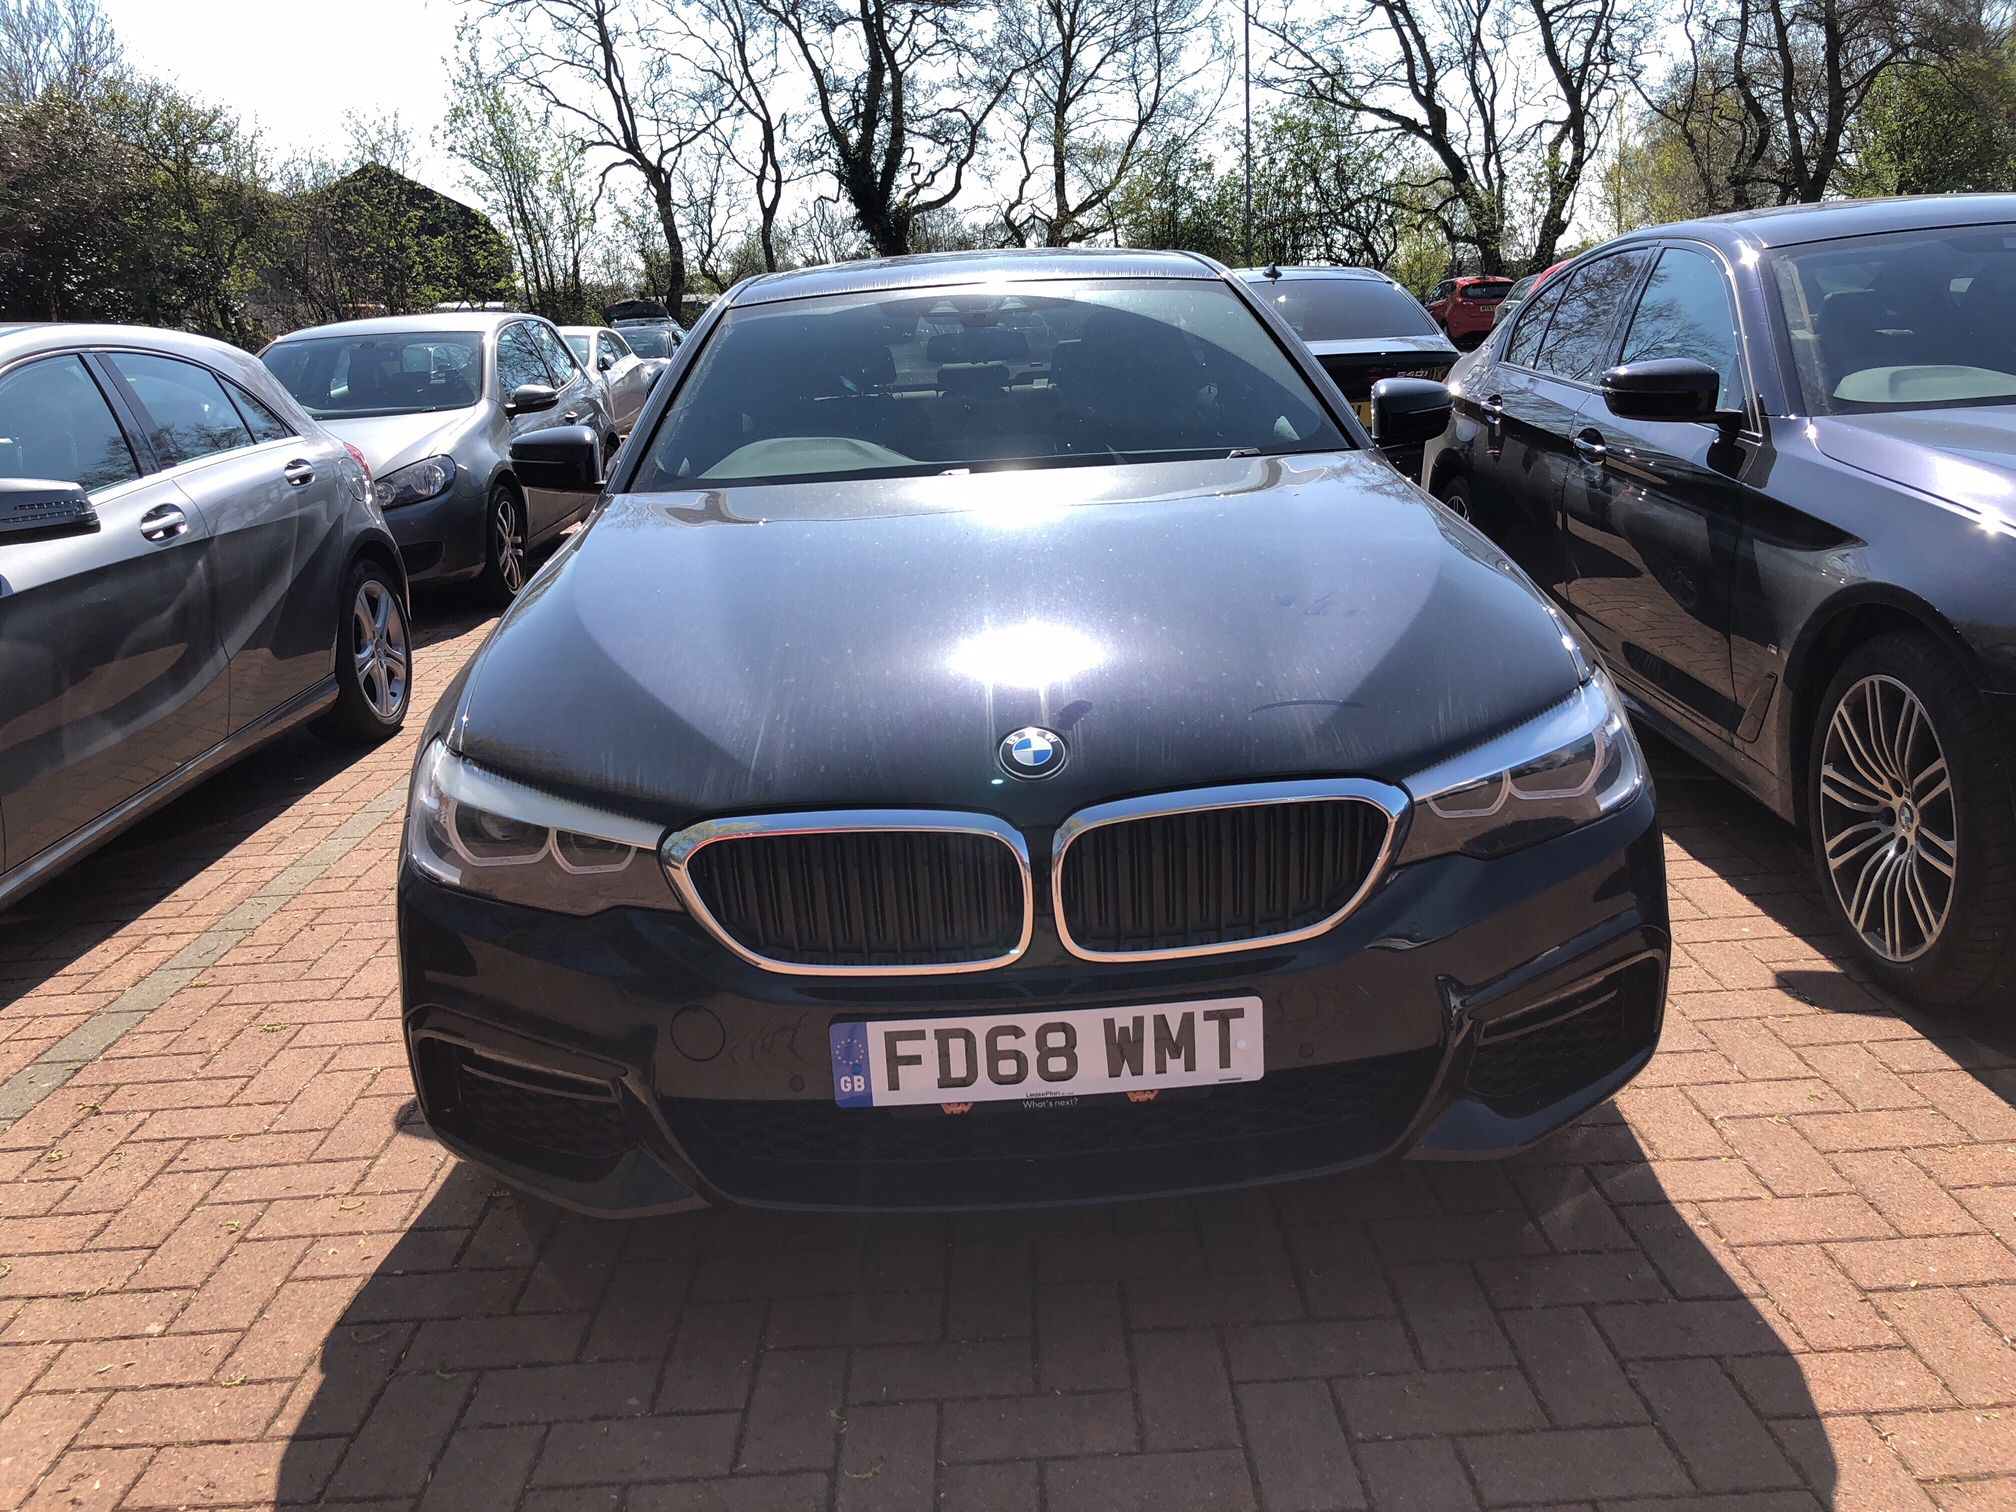 The Bmw 5 Series Saloon 530e M Sport 4 Door Auto Phev Petrol